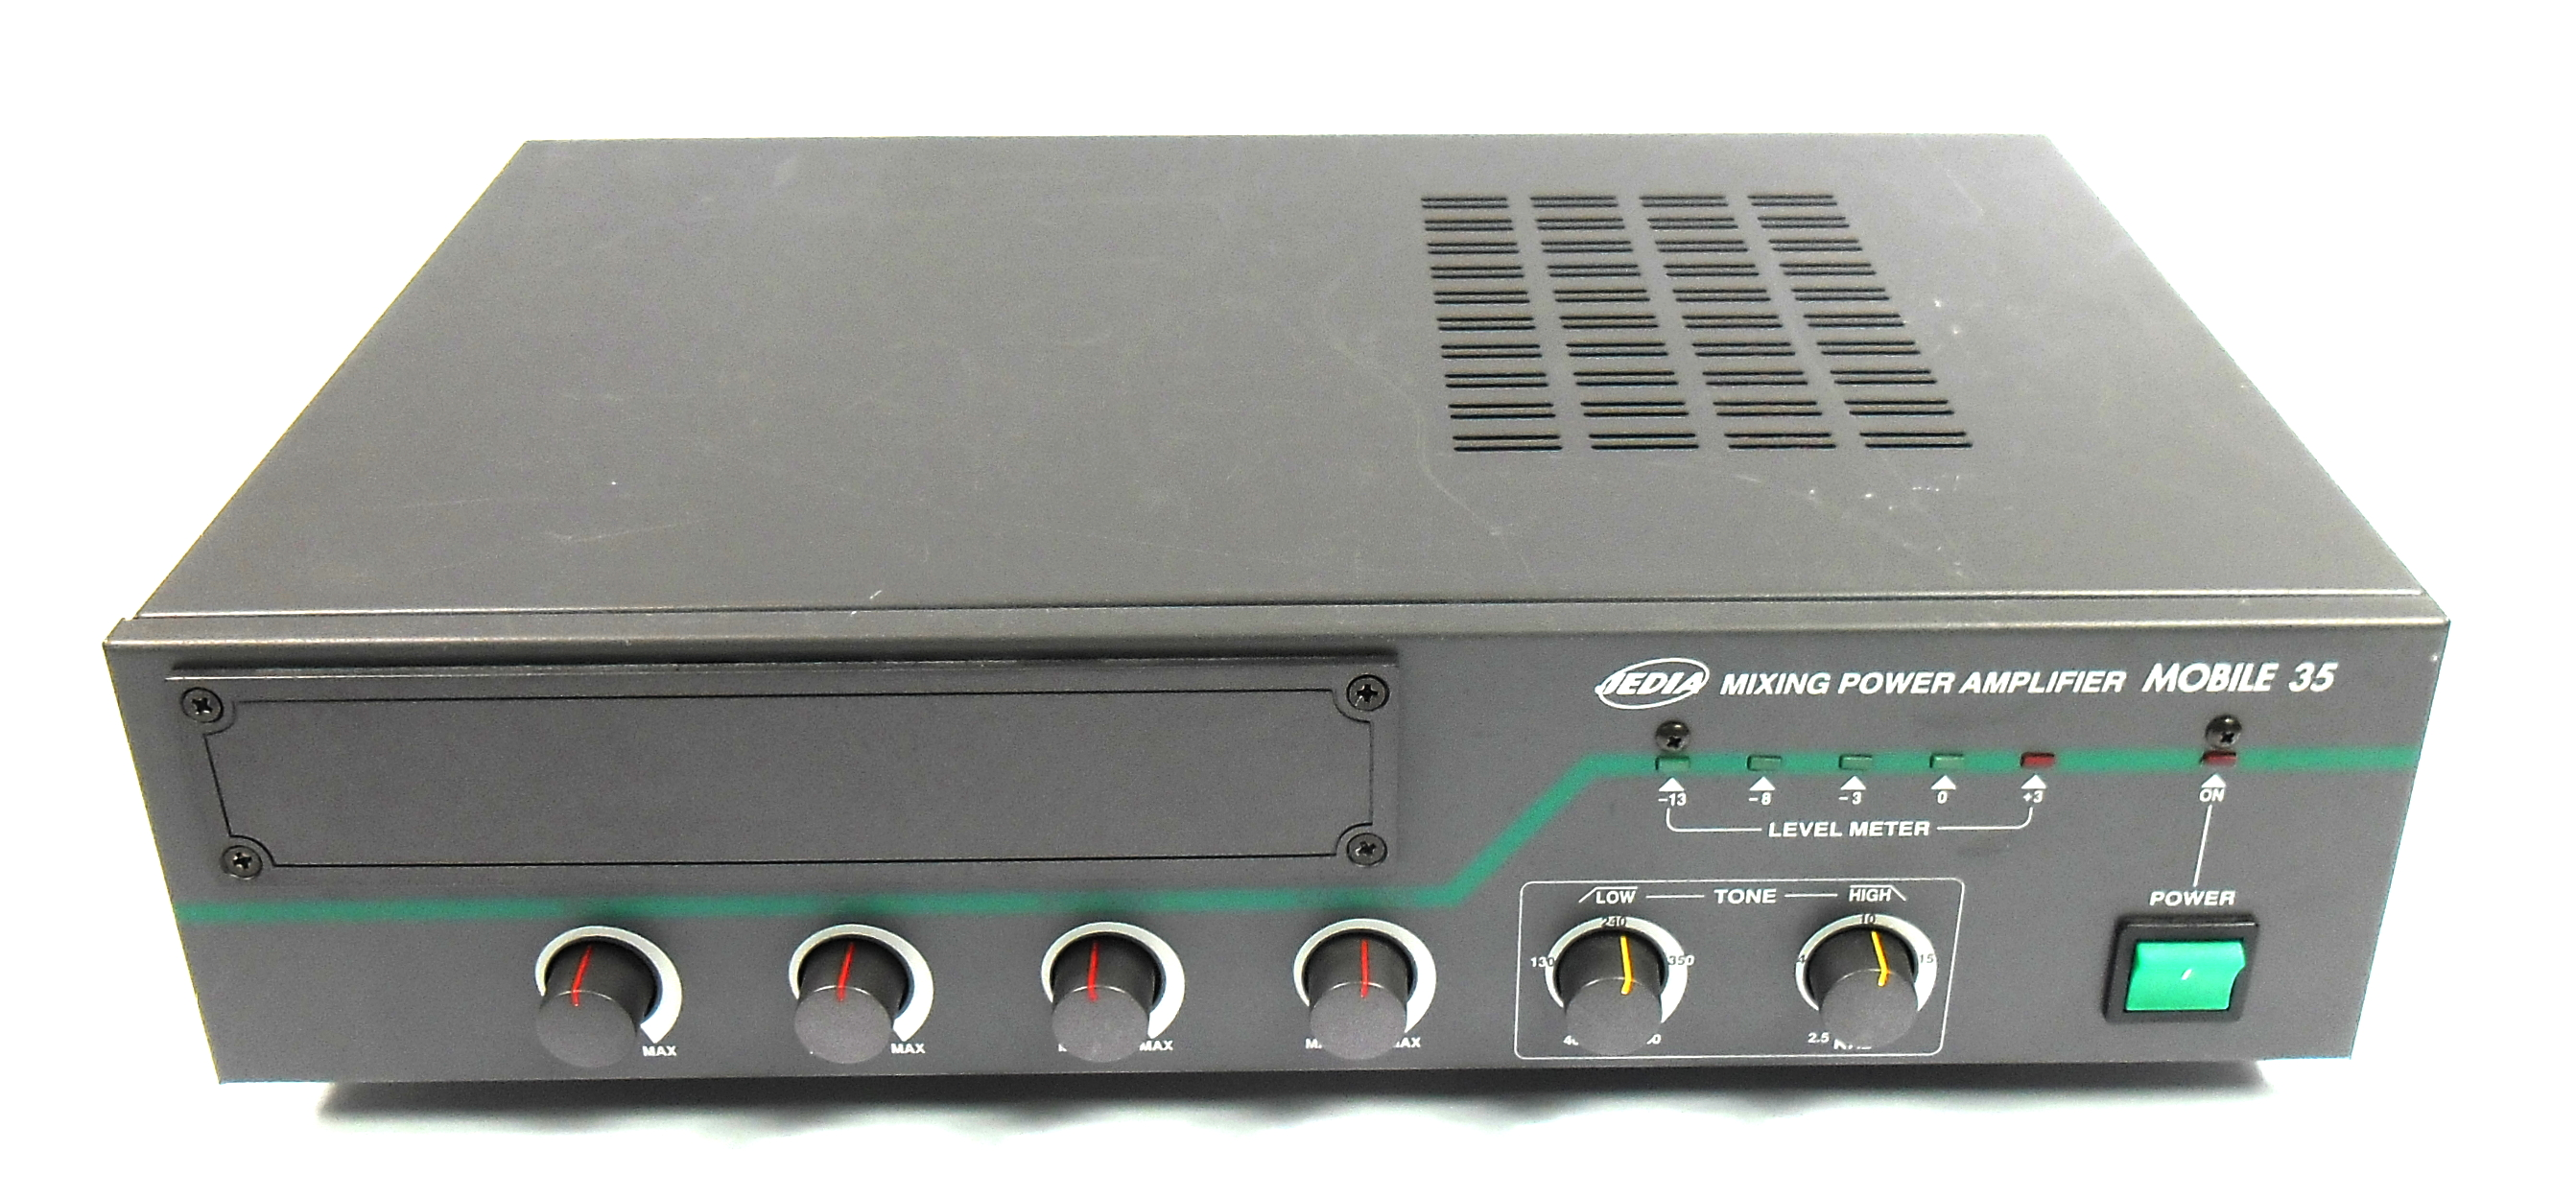 Jedia Mobile 35 Mixing Power Amplifier